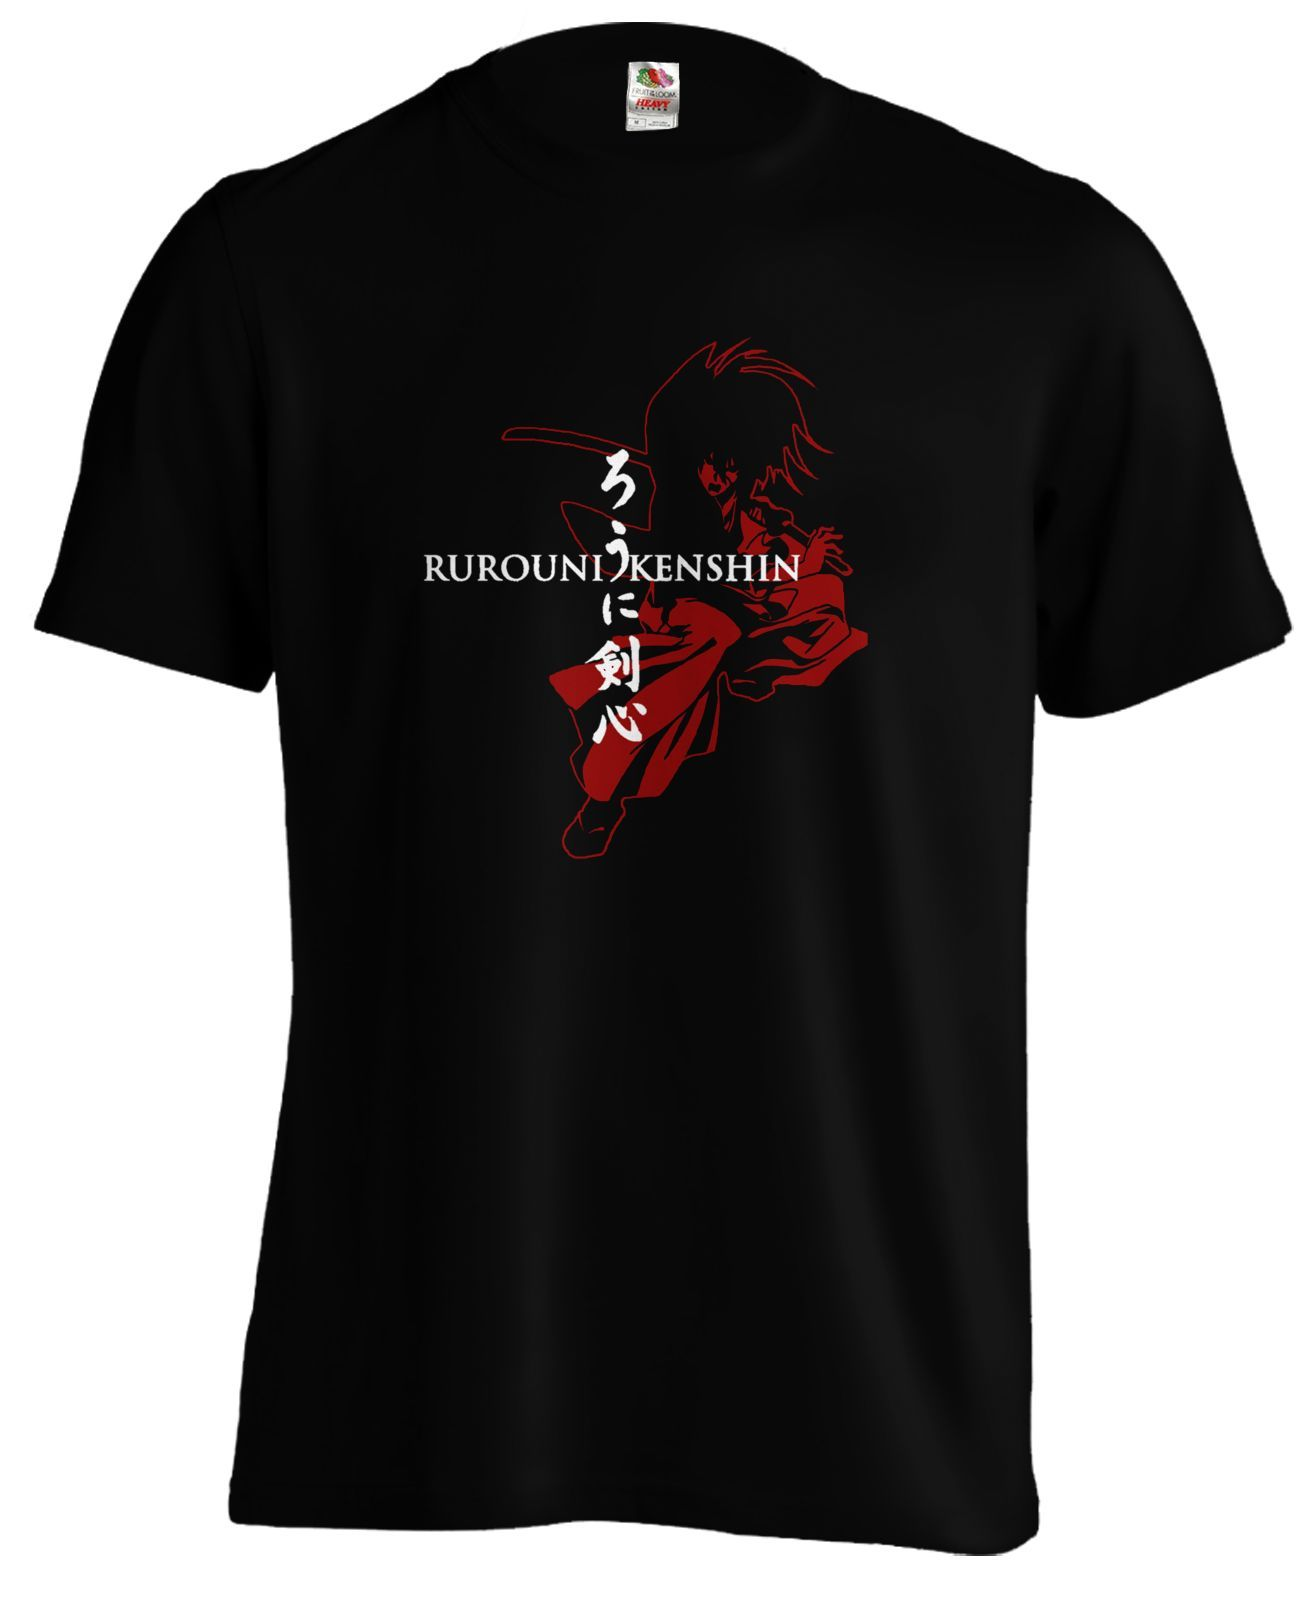 NOT Anime Rurouni Kenshin Toddler Baby Tee for Baby Boy and Baby Girl T-Shirt